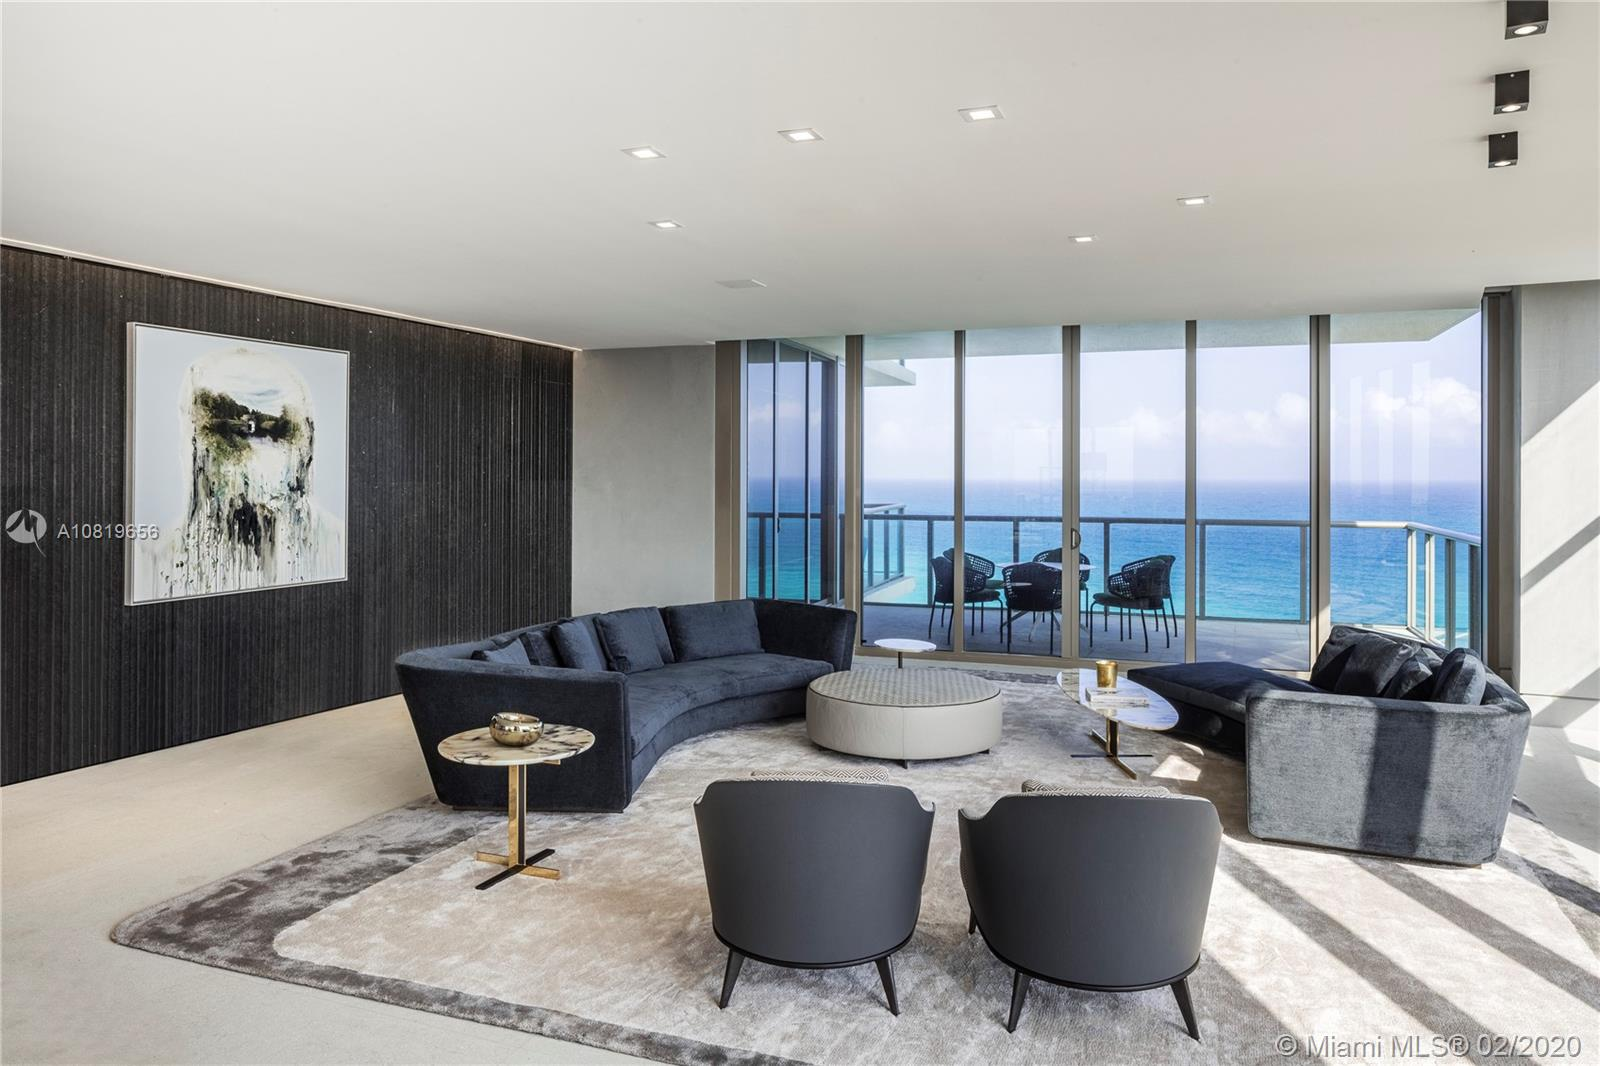 9701 Collins Ave #1401S Property Photo - Bal Harbour, FL real estate listing